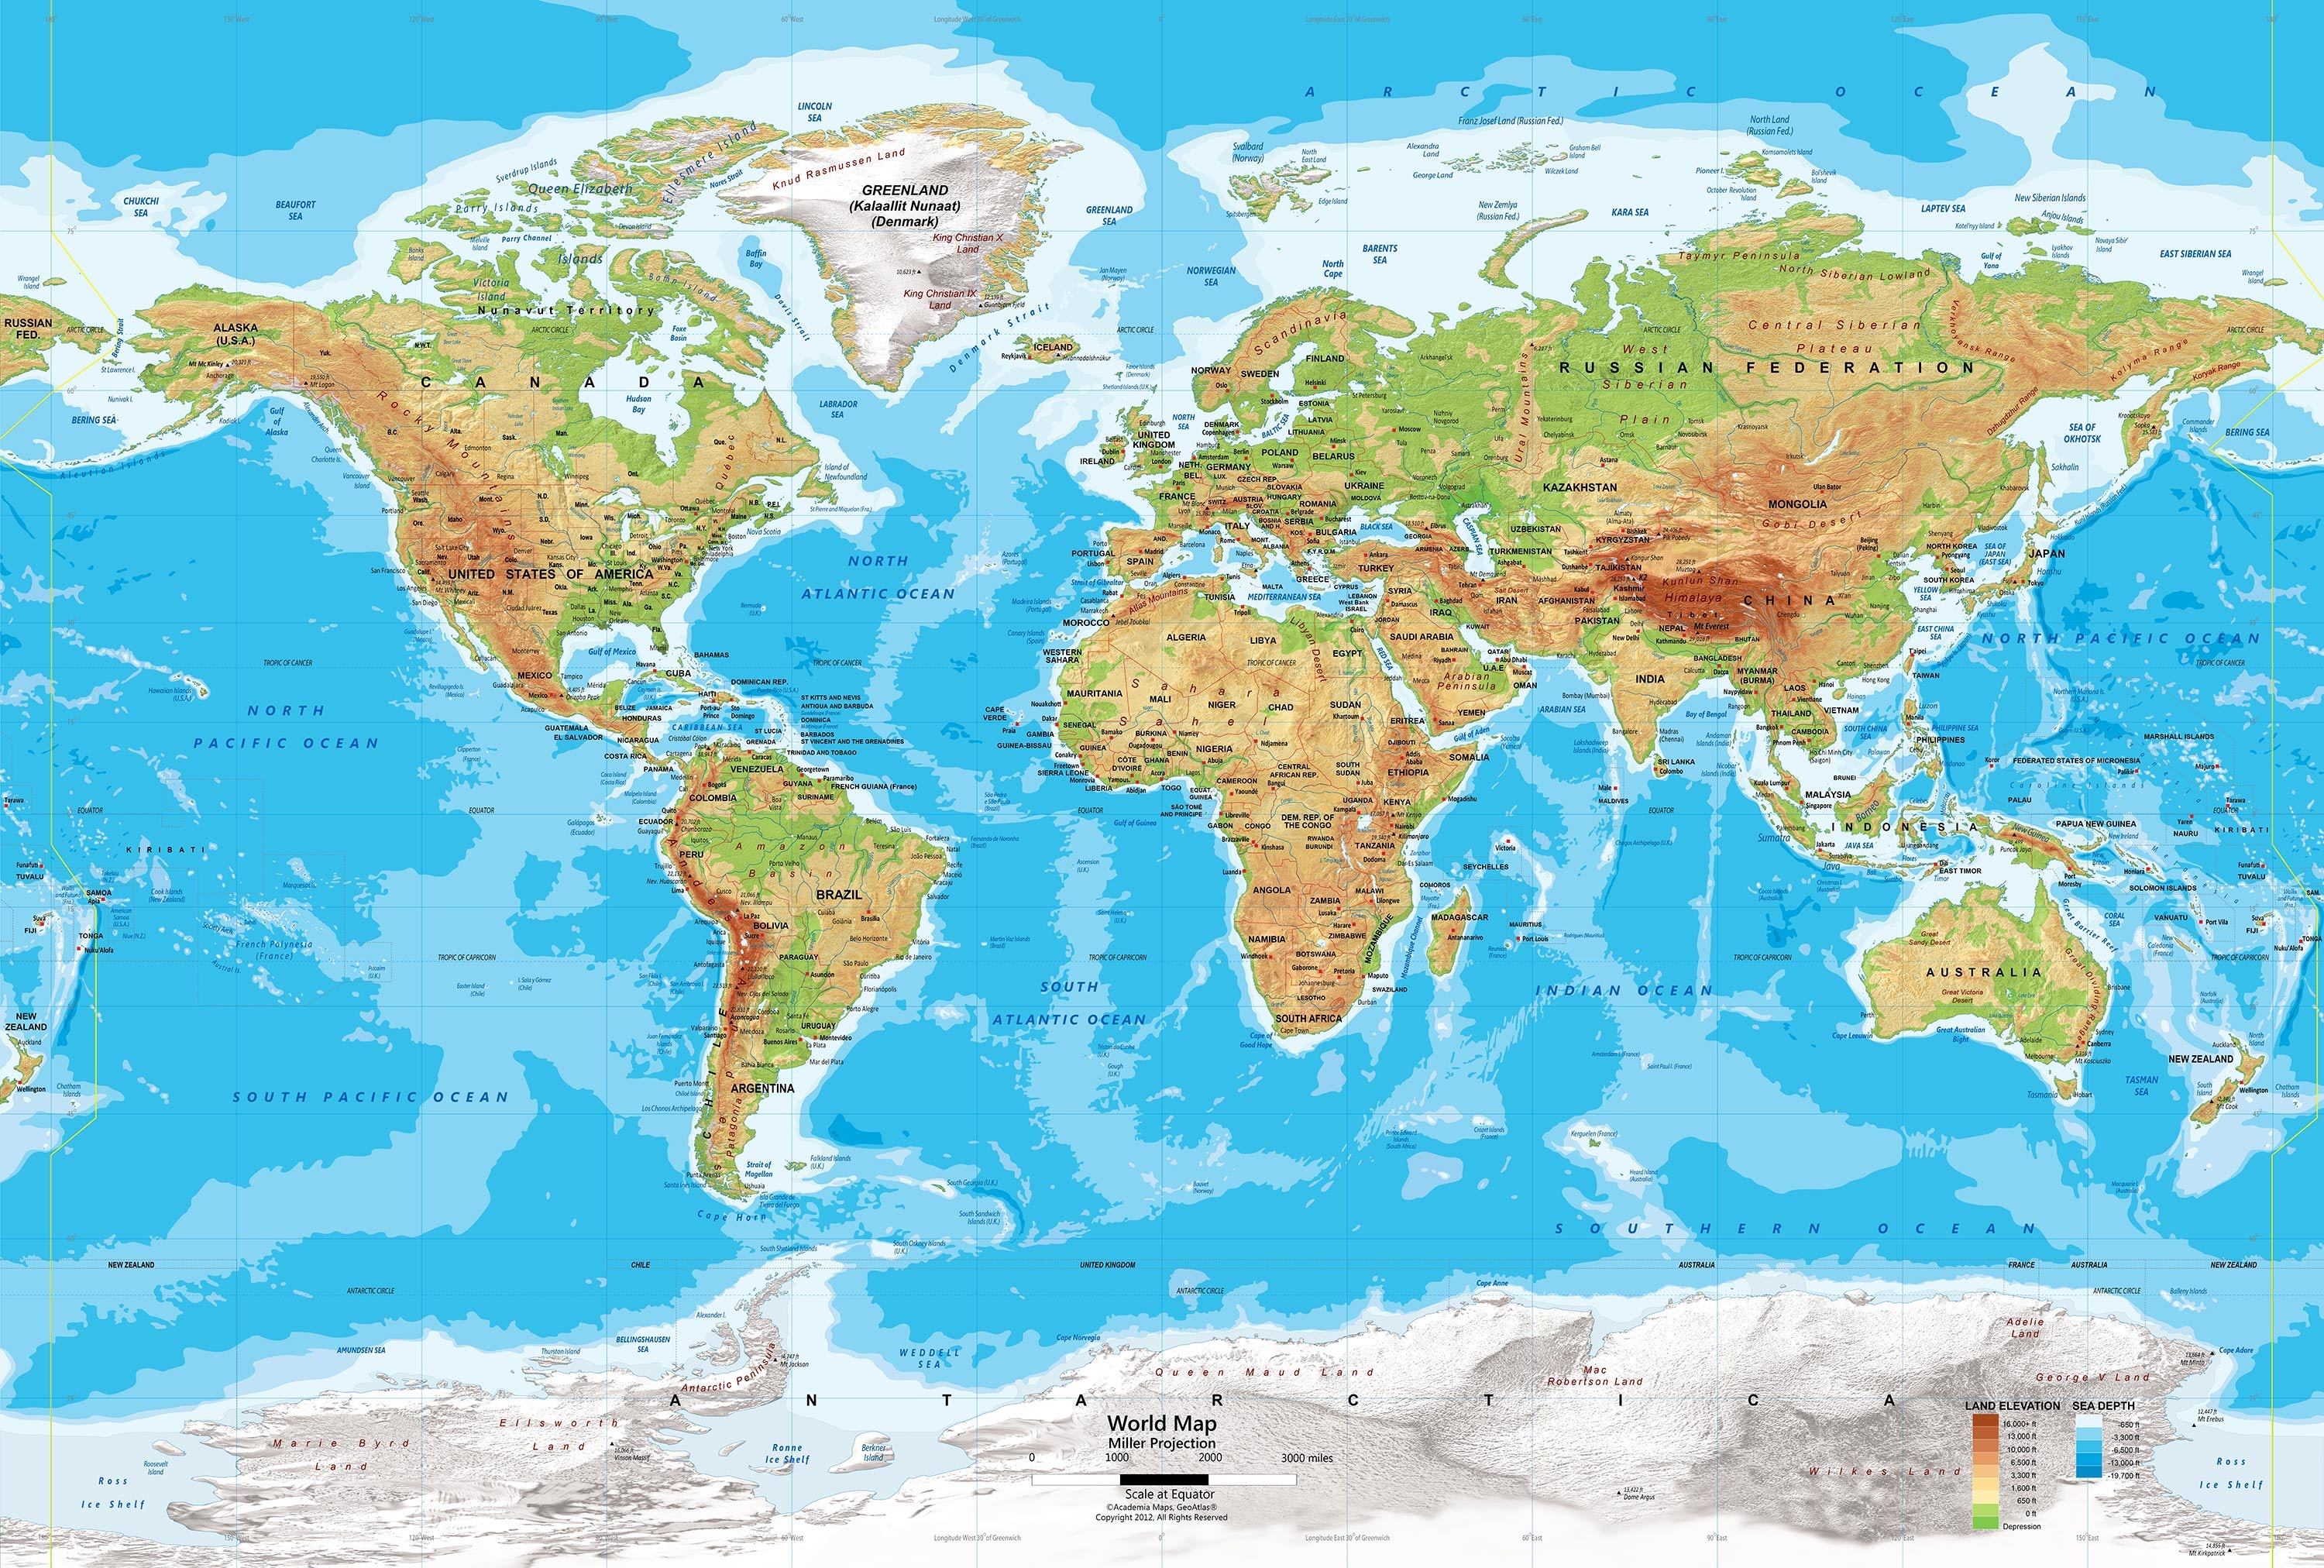 Mr mahoneys 7th grade world geography home gumiabroncs Image collections